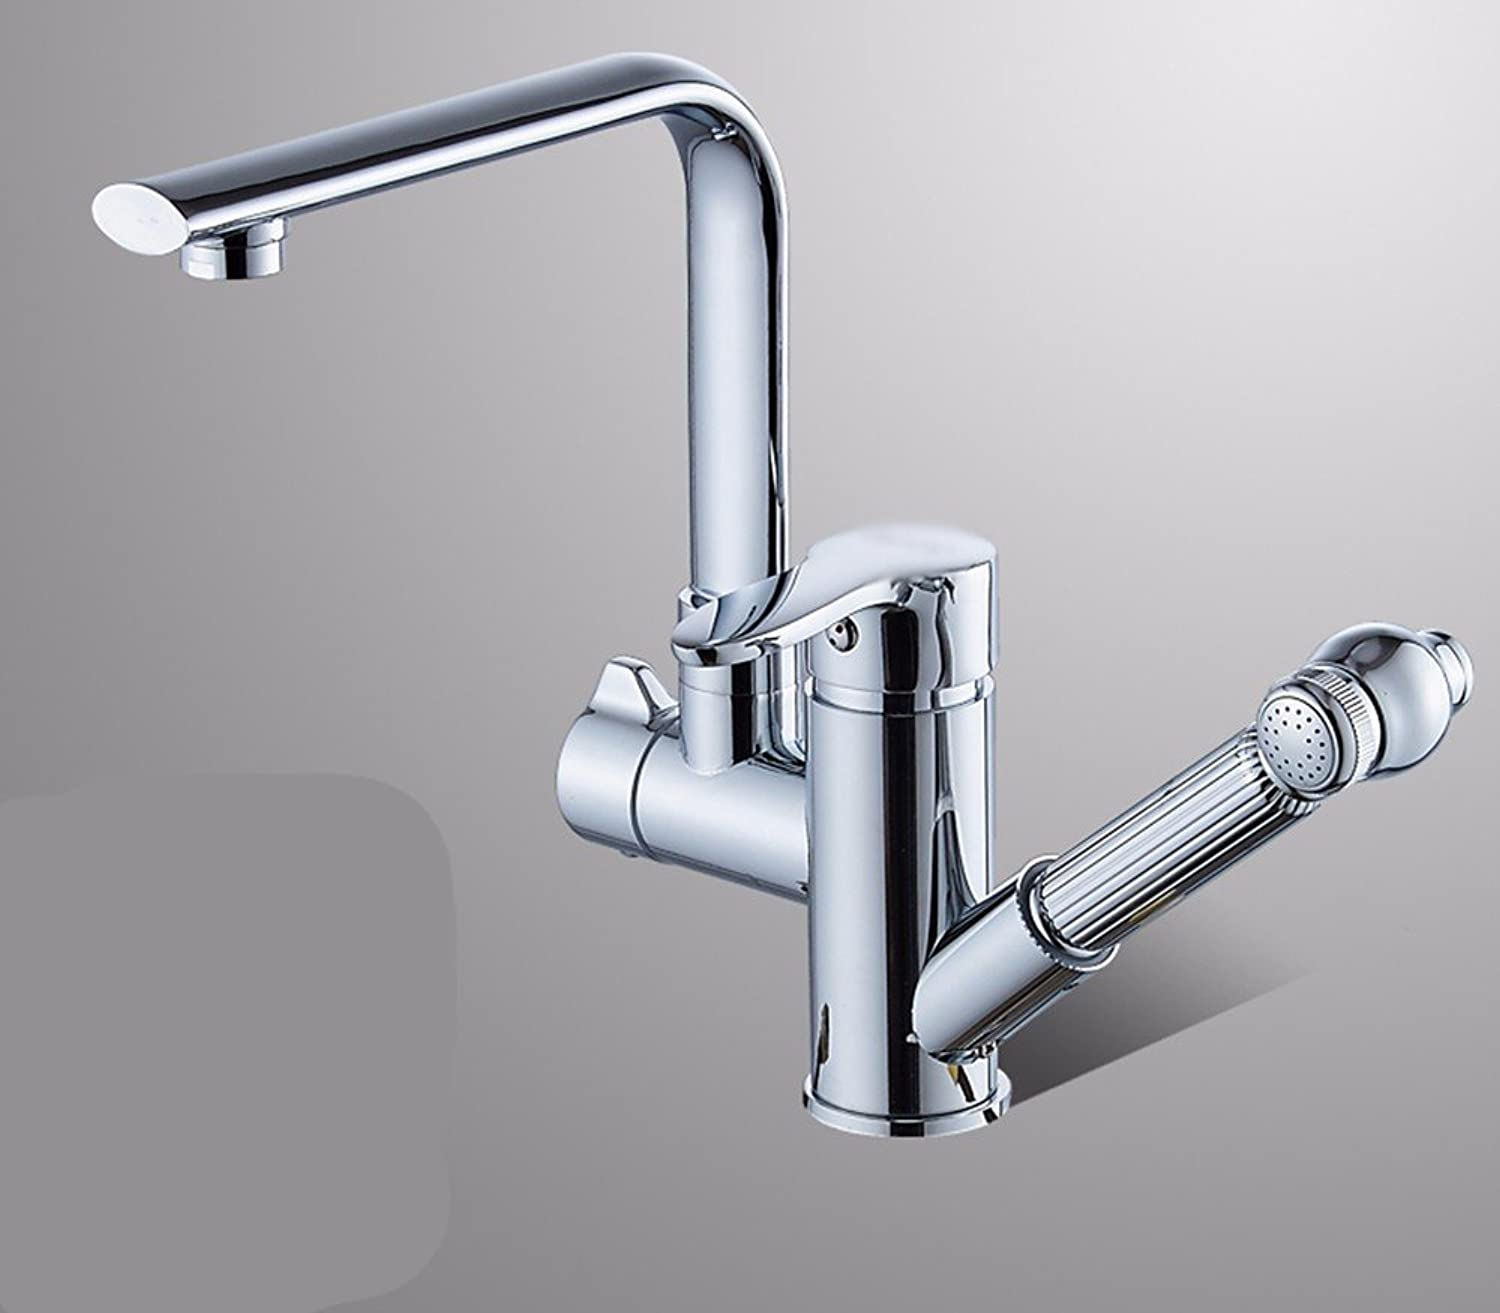 Bijjaladeva Antique Kitchen Sink Mixer Tap The Brass Pull Out Kitchen Turn The Cold Water Faucet 1 Slot